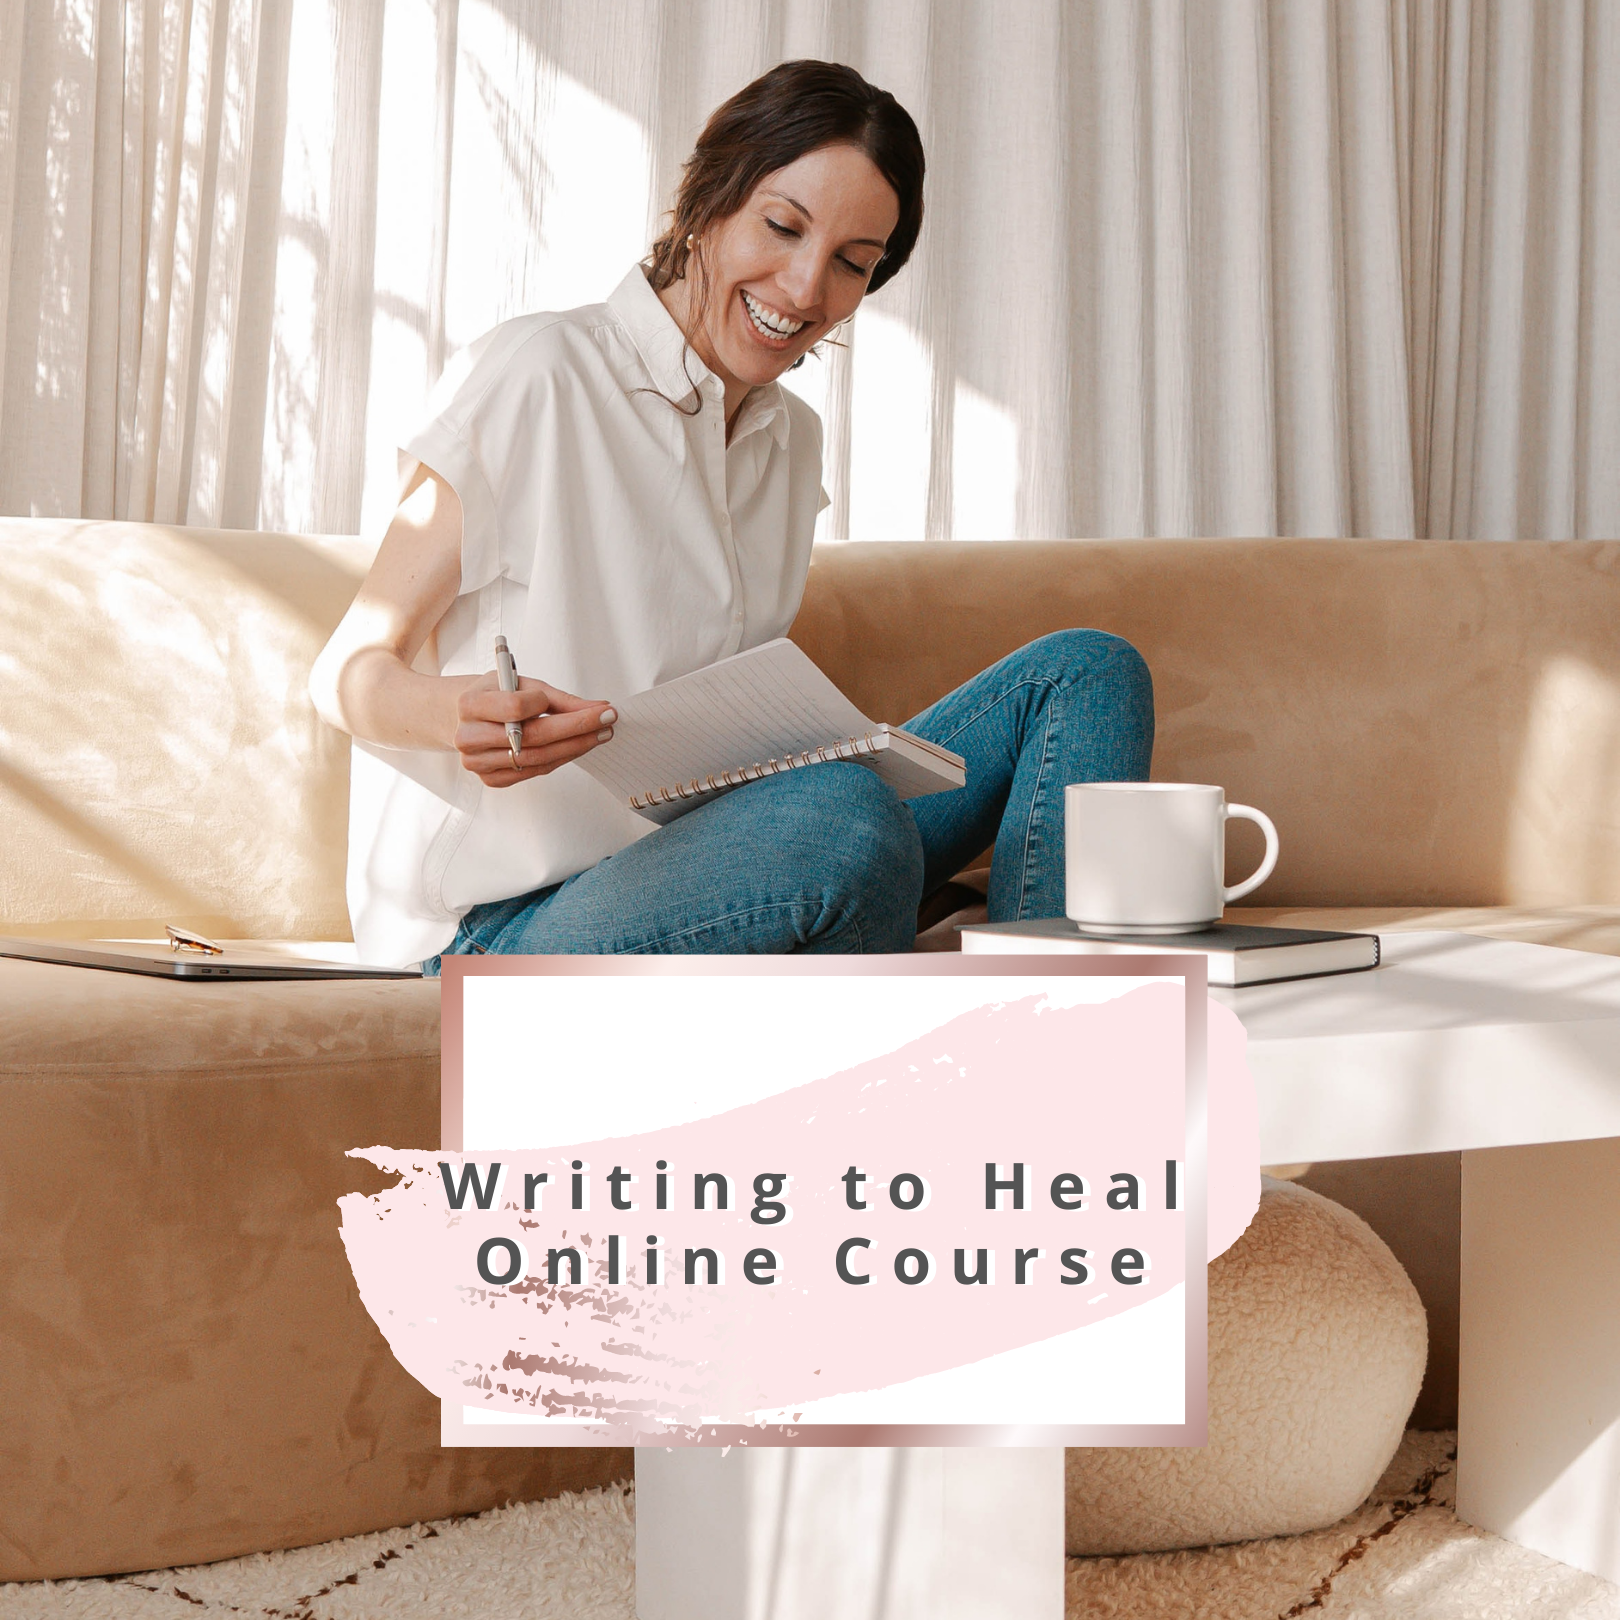 Writing to Heal Course Thumbnail